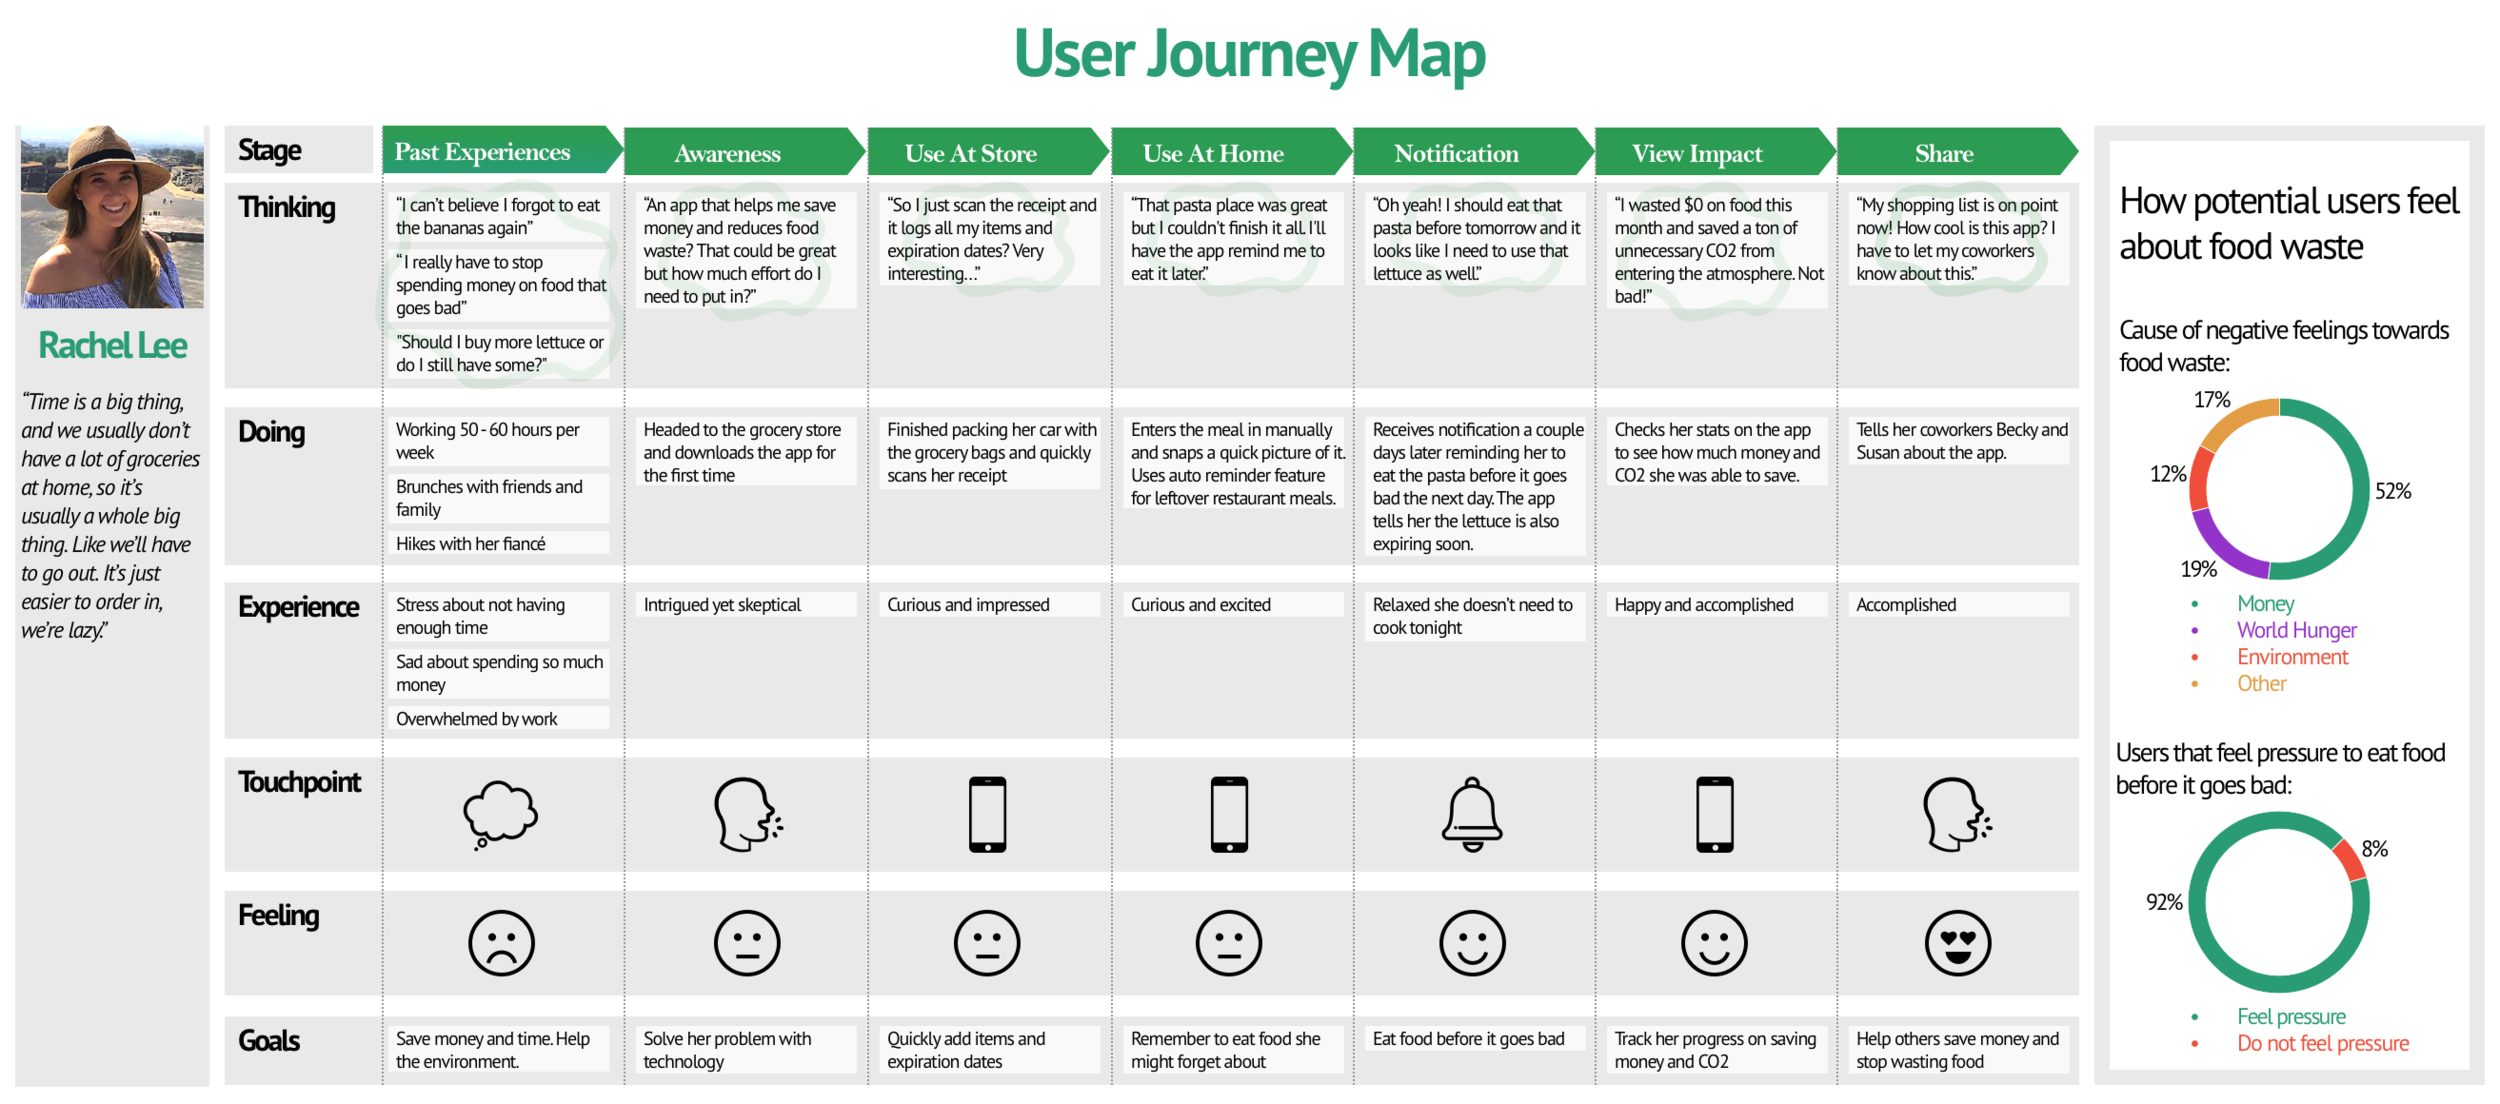 user_journey_map.png